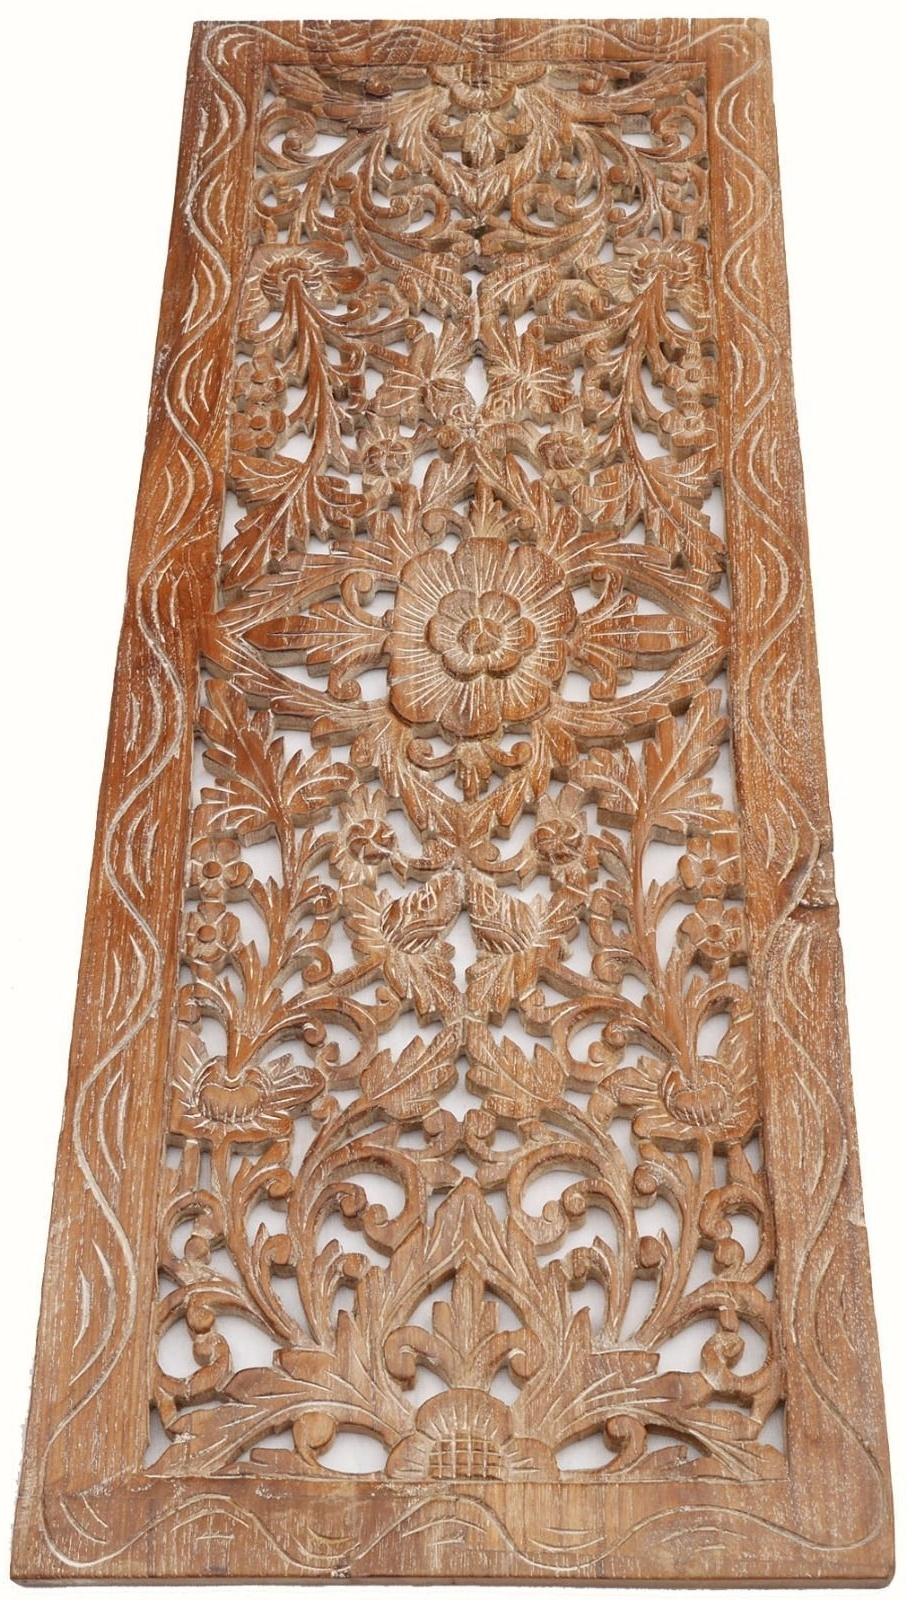 Carved Wood Wall Art For Most Recent Asian Carved Wood Wall Decor Panel. Floral Wood Wall Art (View 5 of 15)